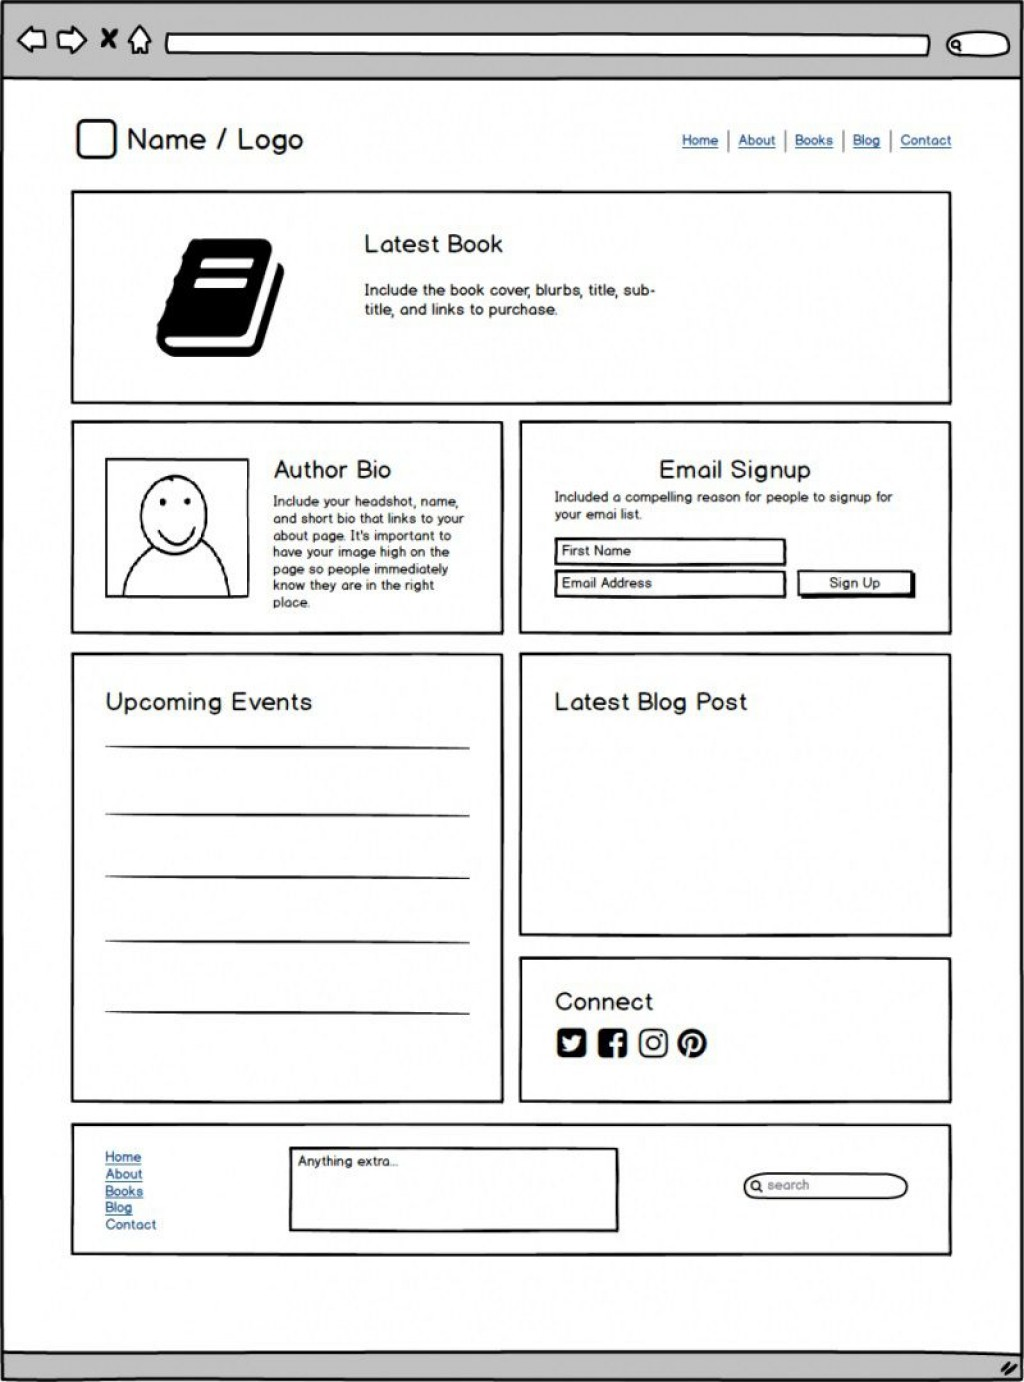 005 Formidable About The Author Template High Resolution  Pdf All For StudentLarge